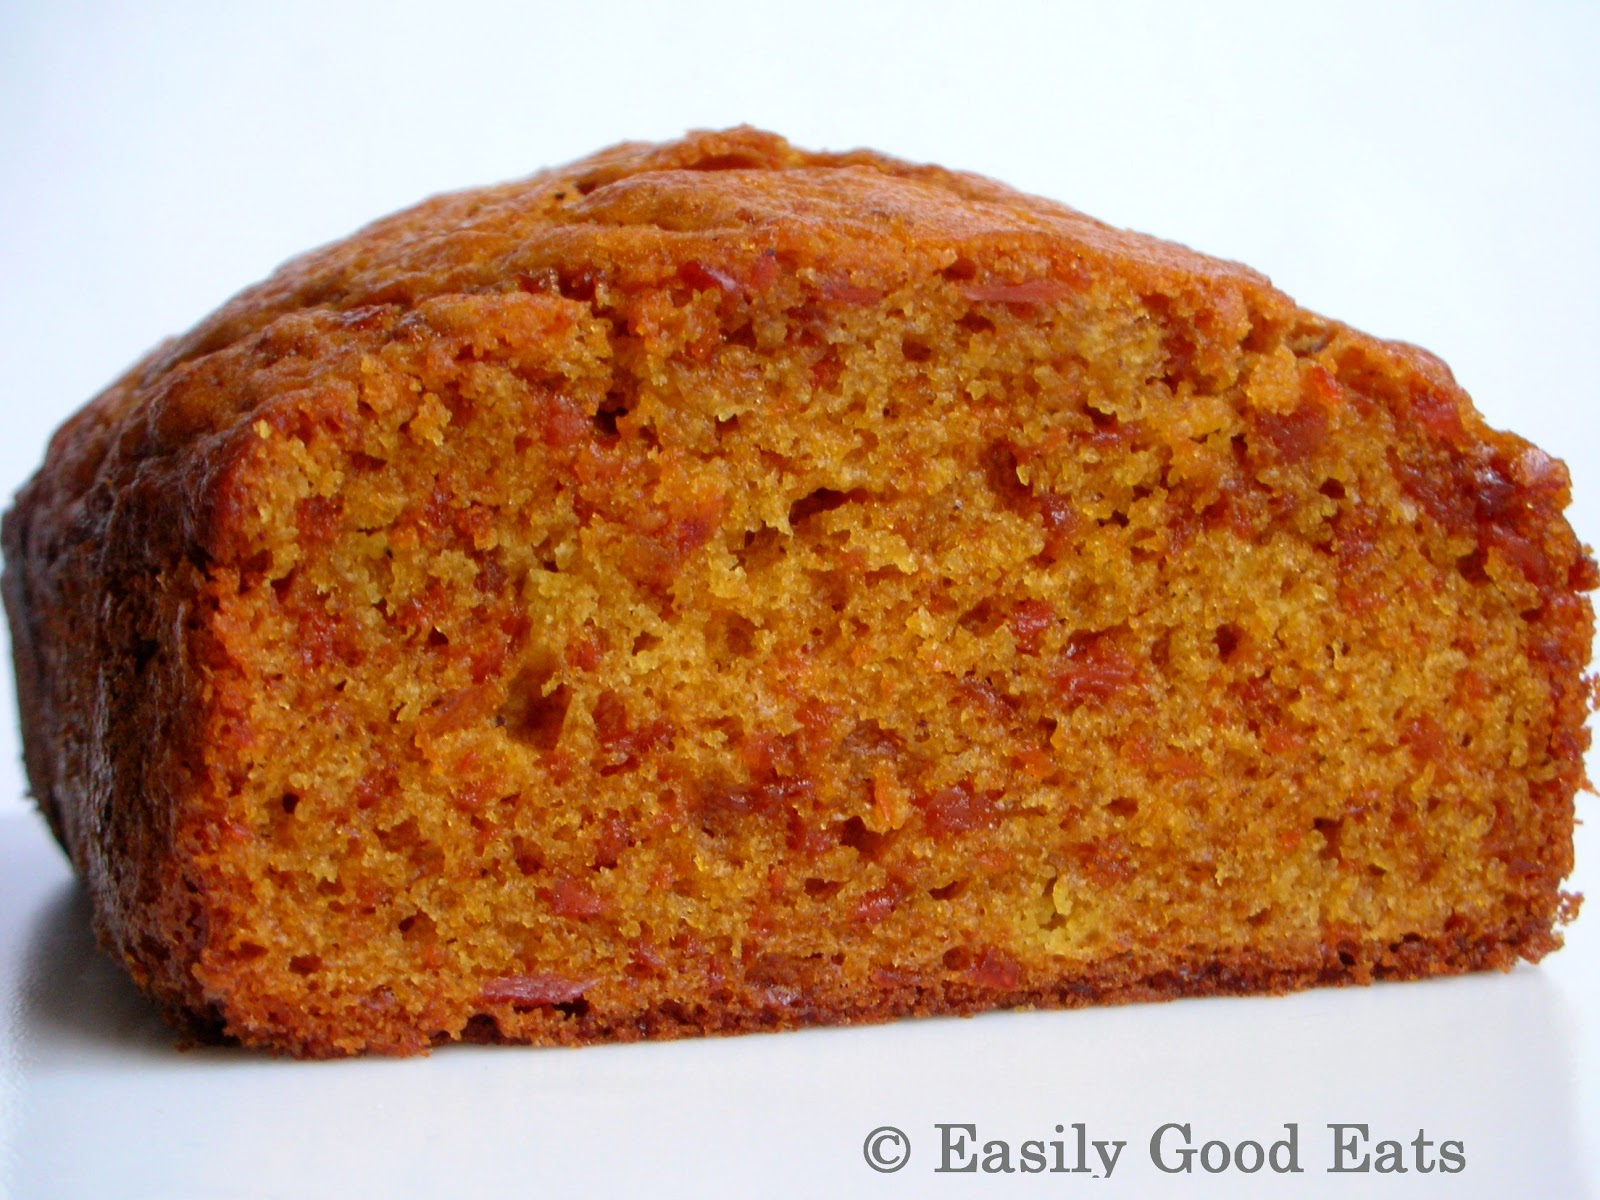 Easy Carrot Cake Bread Recipe